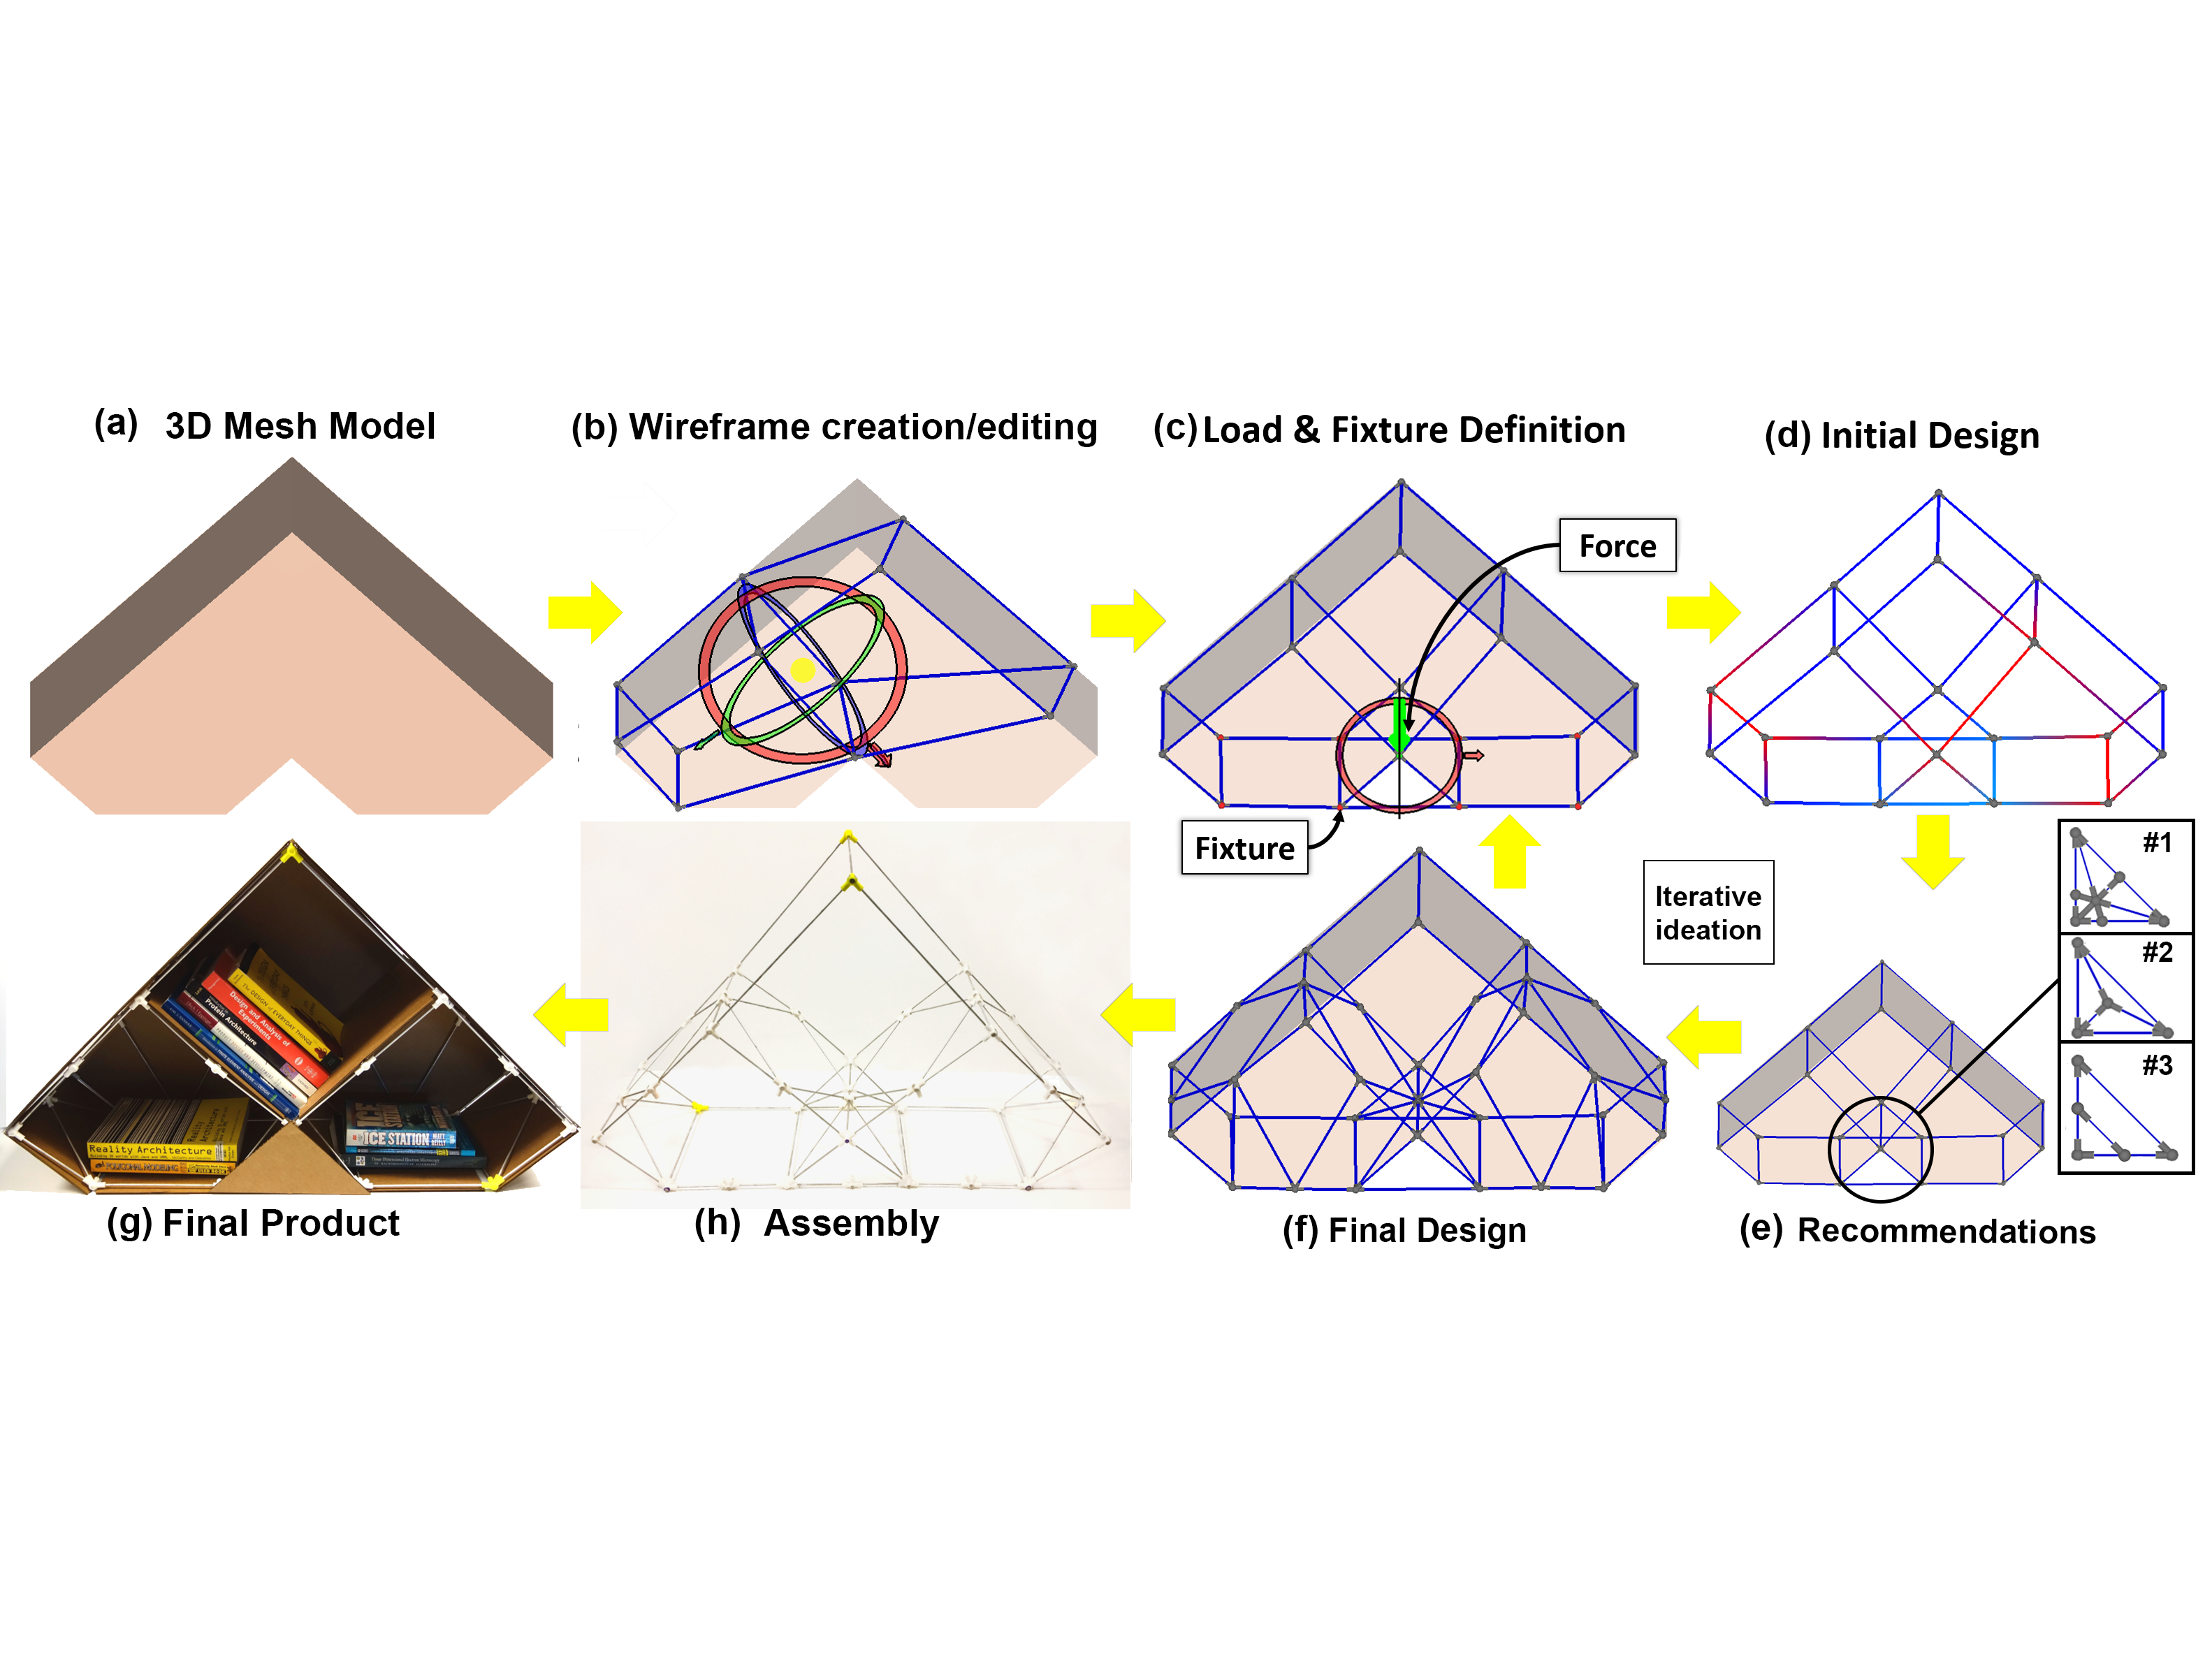 Shape Structuralizer: Design, Fabrication, and User-driven Iterative Refinement of 3D Mesh Models